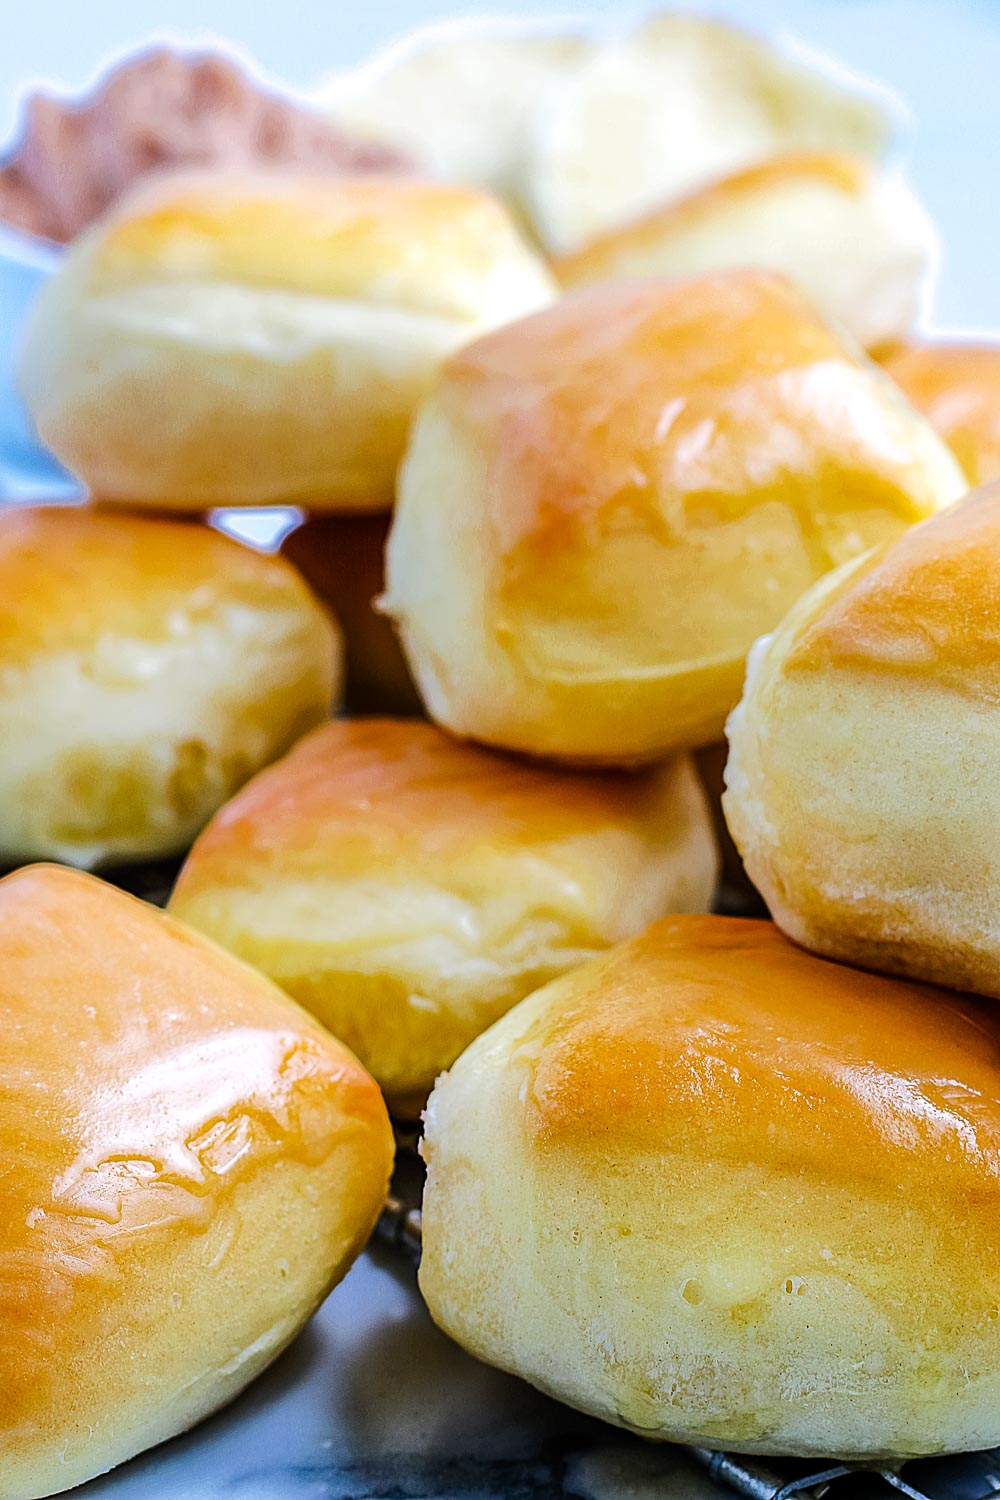 A close up picture of a pile of the finished Copycat Texas Roadhouse Rolls.